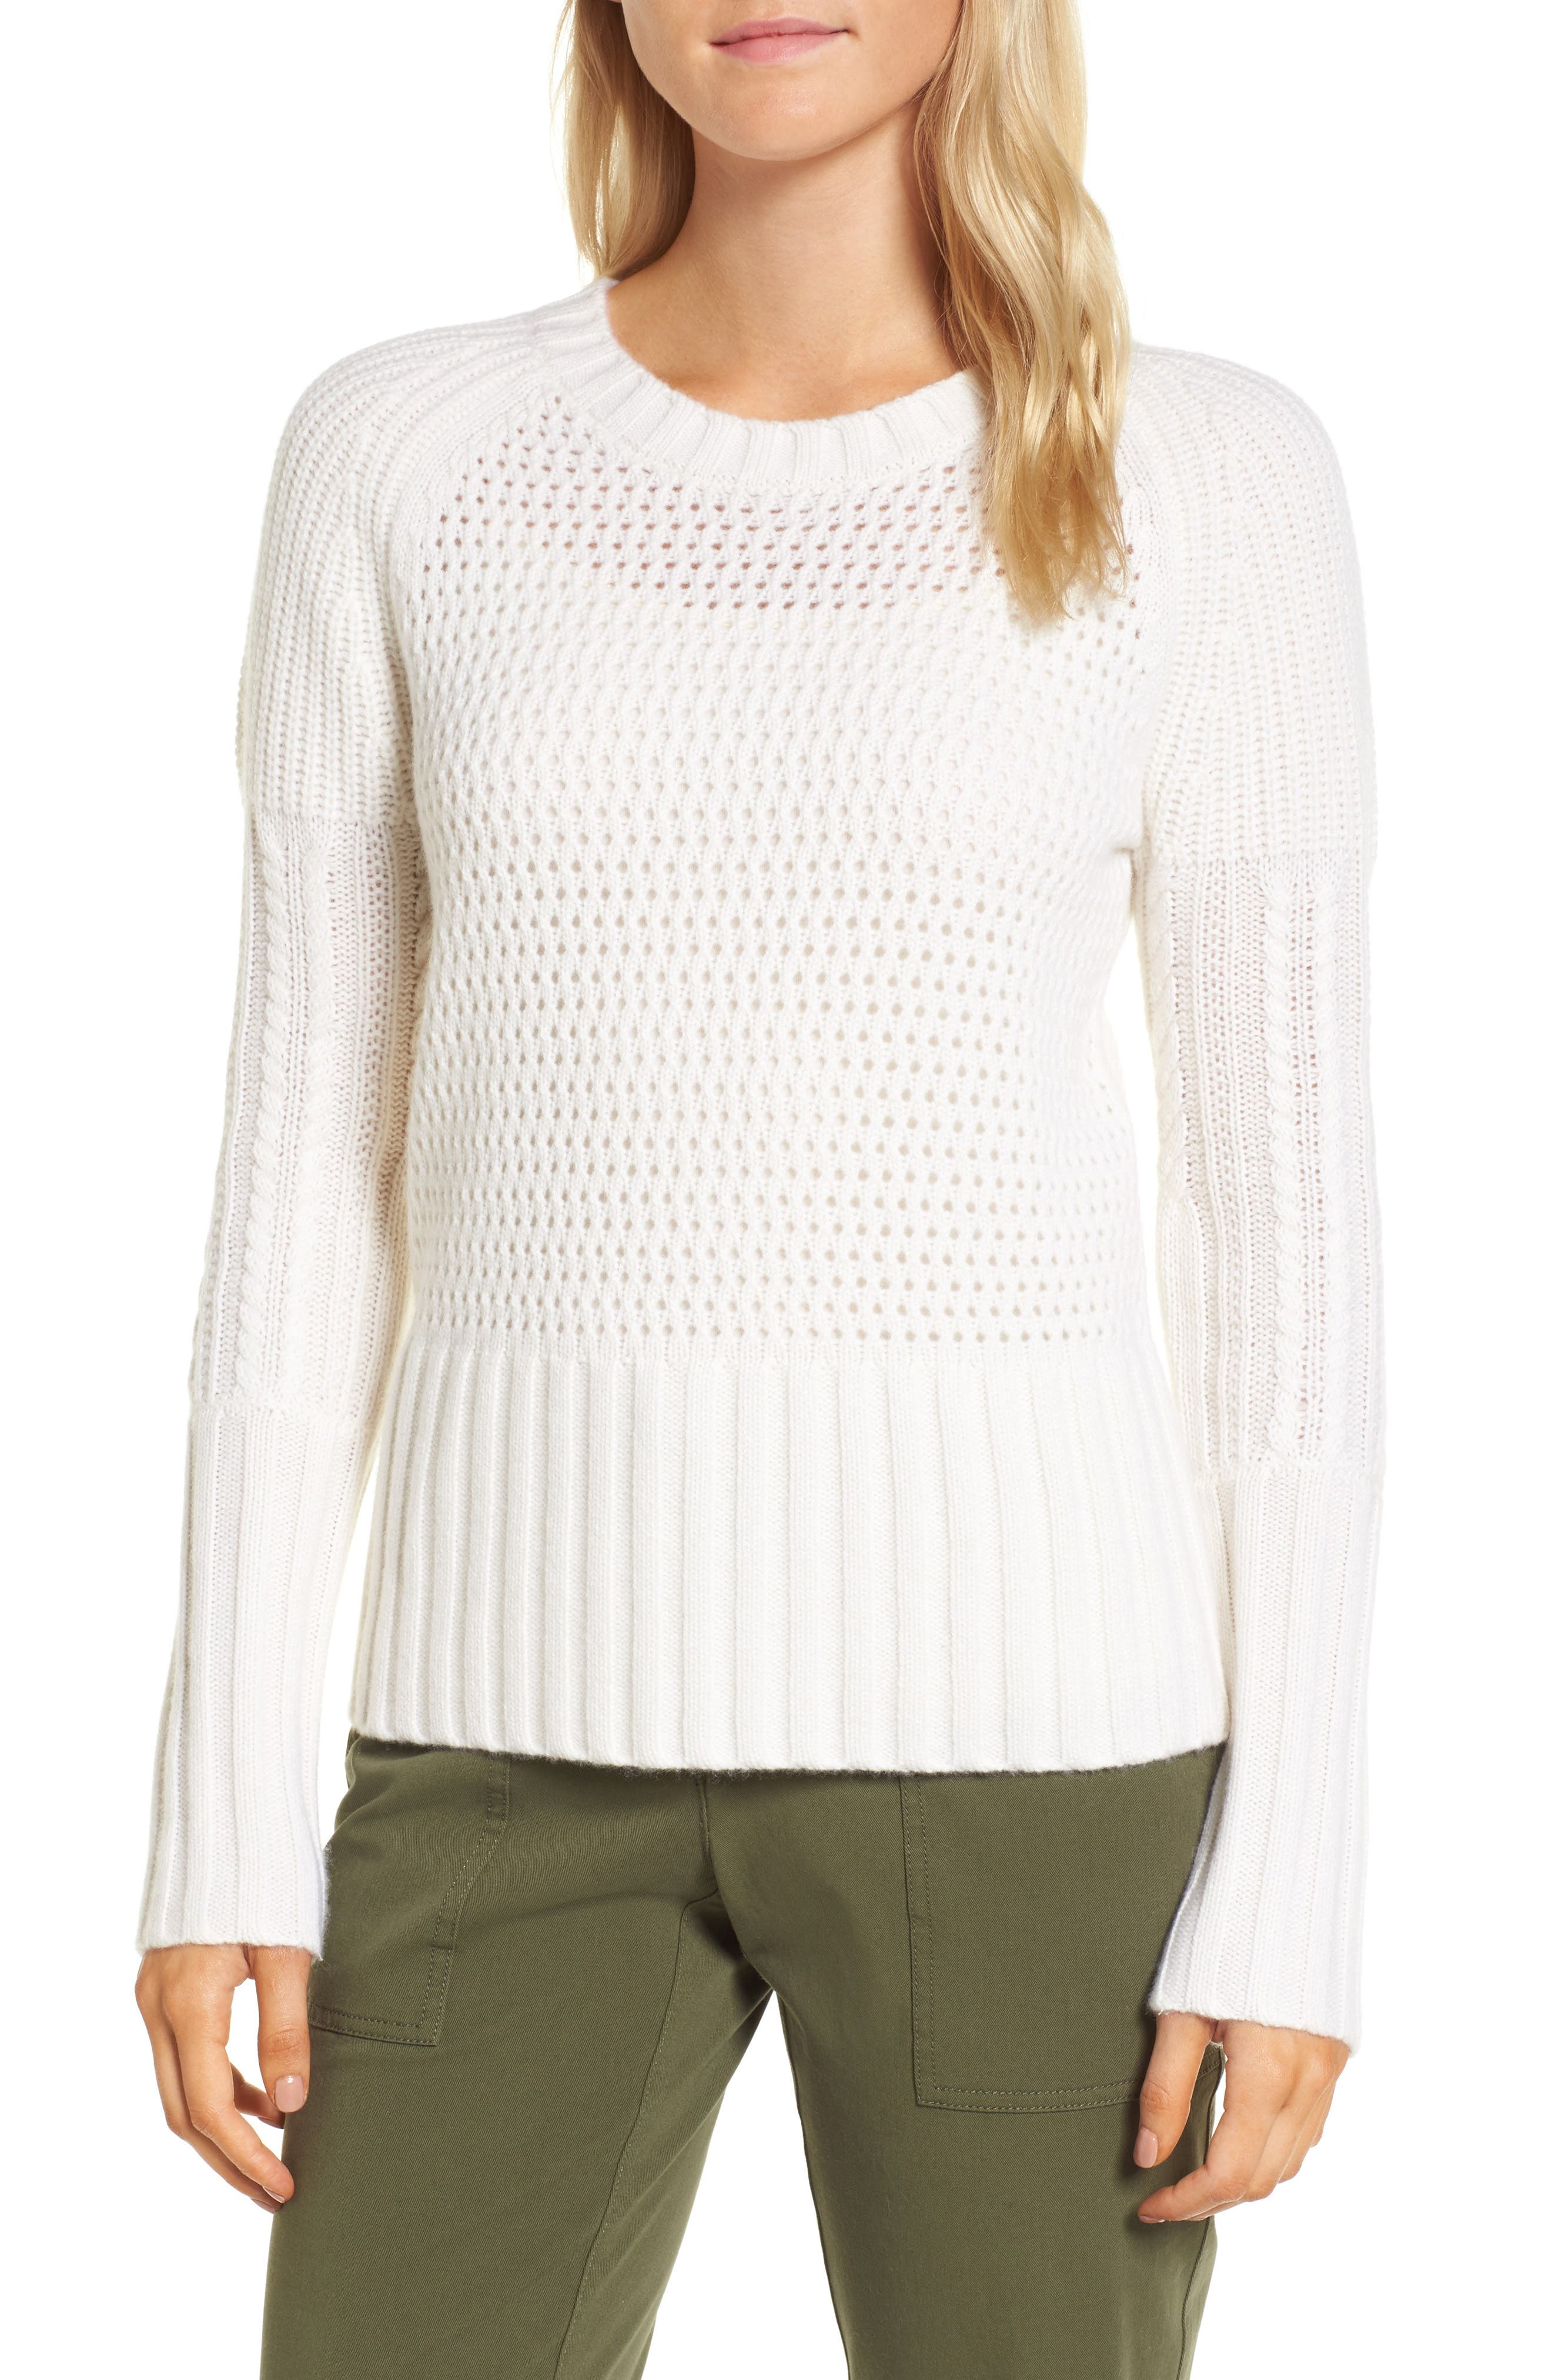 Main Image - Nordstrom Signature Mixed Stitch Cashmere Sweater